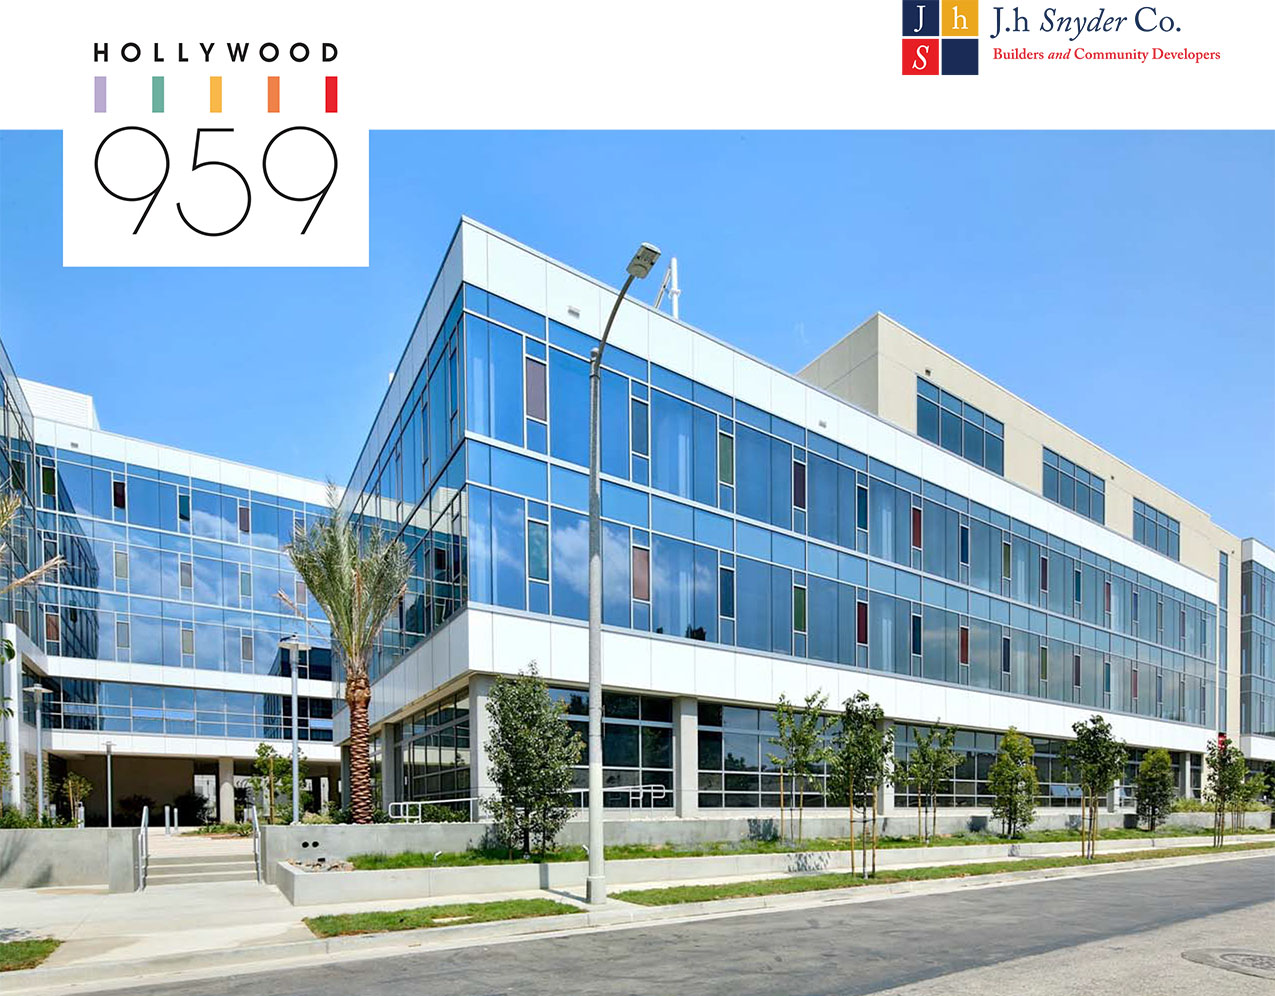 Hollywood 959 project by J.H. Snyder